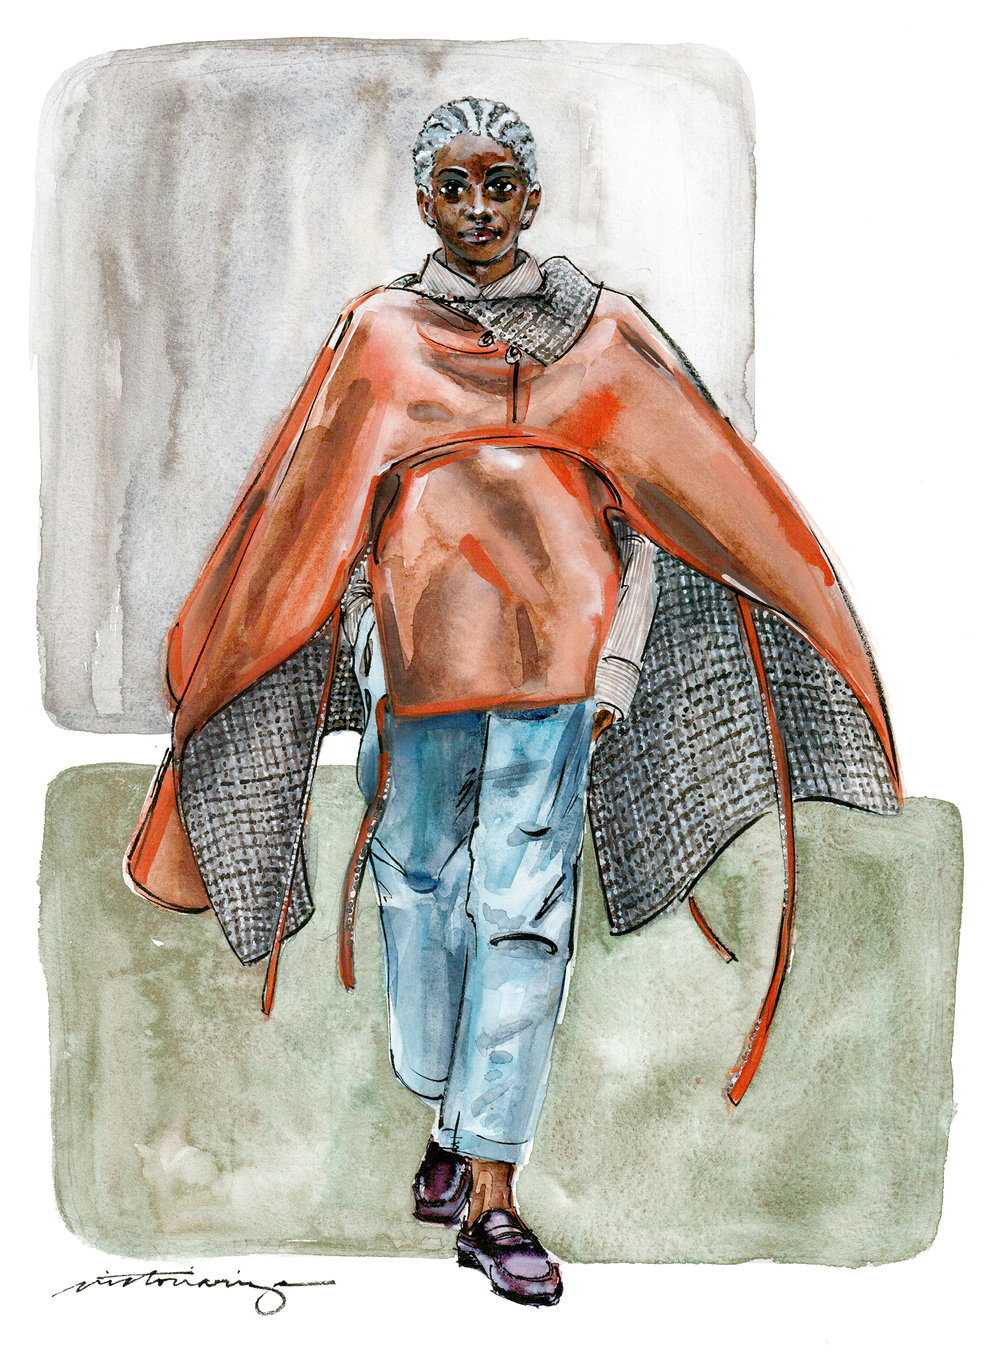 This illustration was painted on white  Magnani Pescia  paper with watercolor and gouache, finishing the illustration off with an  Ink Pen Brush . The illustration is based off of Tommy Ton's Fall 2019 RTW collection for Deveaux.   DISCLOSURE: I am an affiliate of the Blick Art Materials Program and receive commission from sales from the links above.